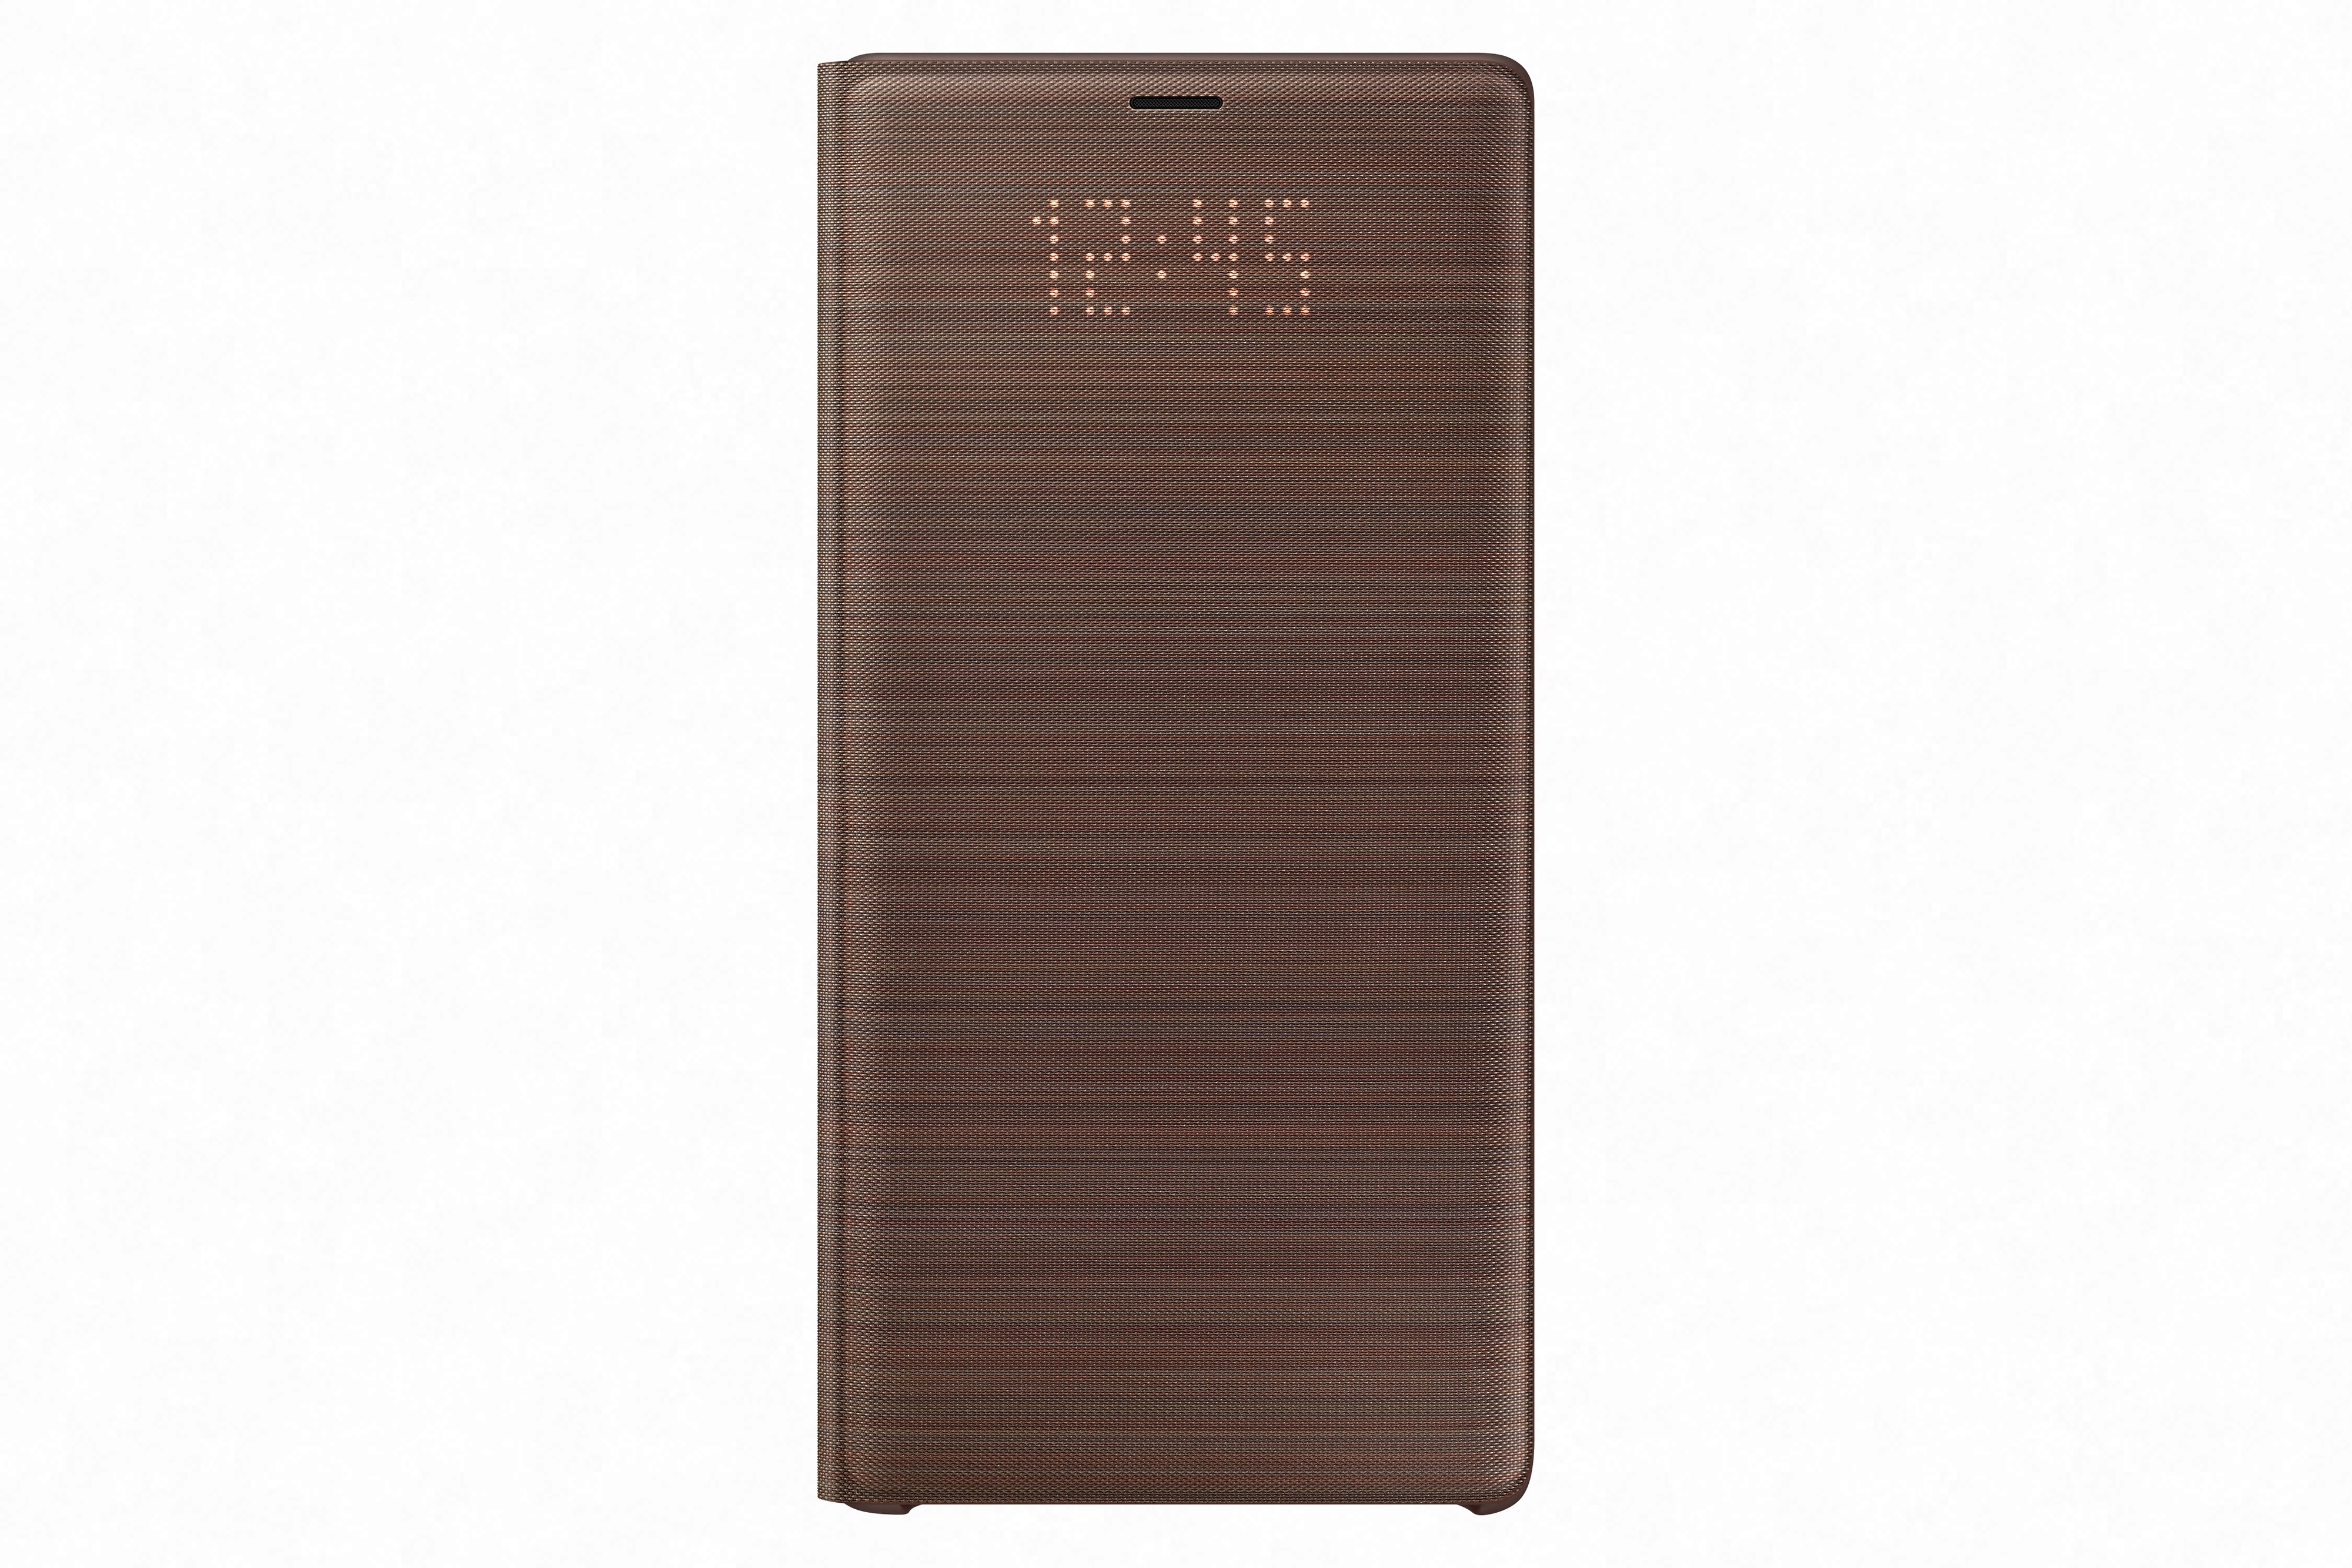 Samsung Galaxy Note9 Led View Cover Suojakotelo Ruskea For Brown Kannessa Informatiiviset Valot